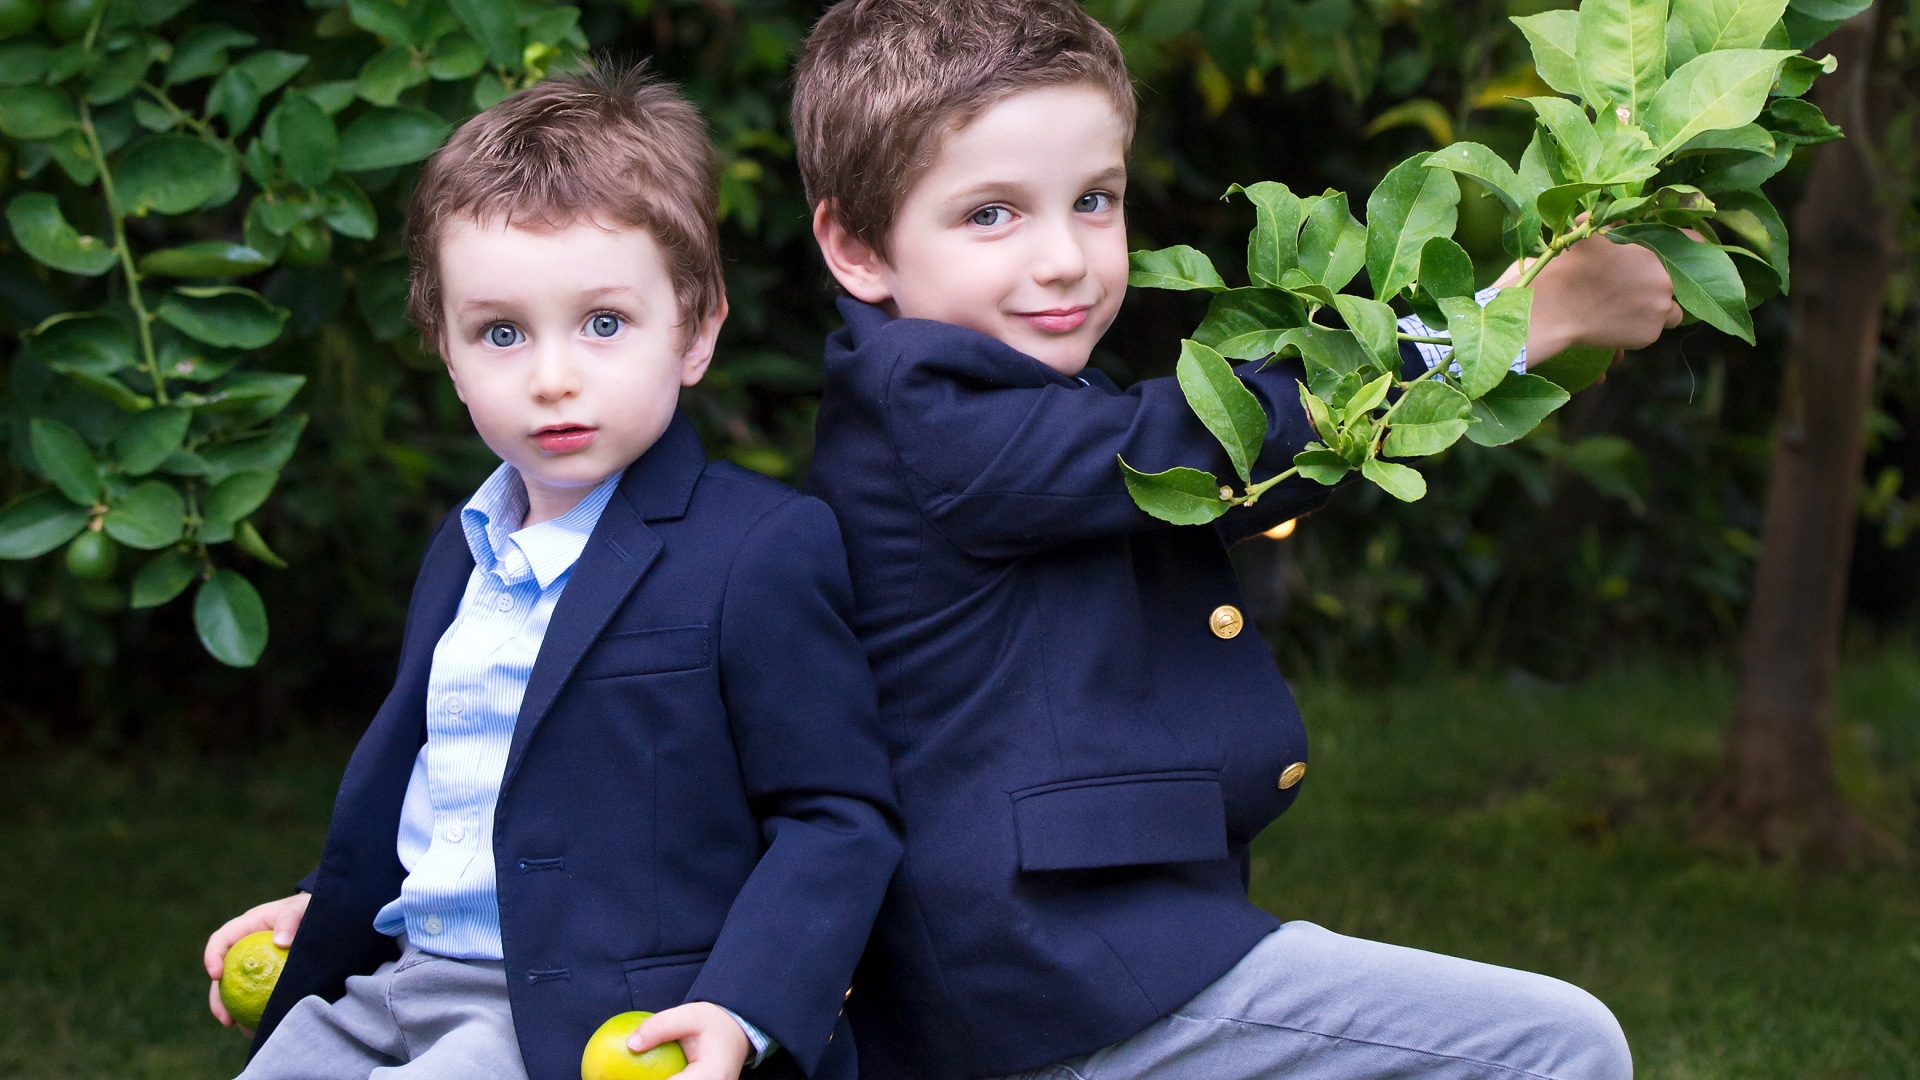 brothers, Image of brothers, modern portraits, Los Angeles Portrait Photographer, Family portraits on location,